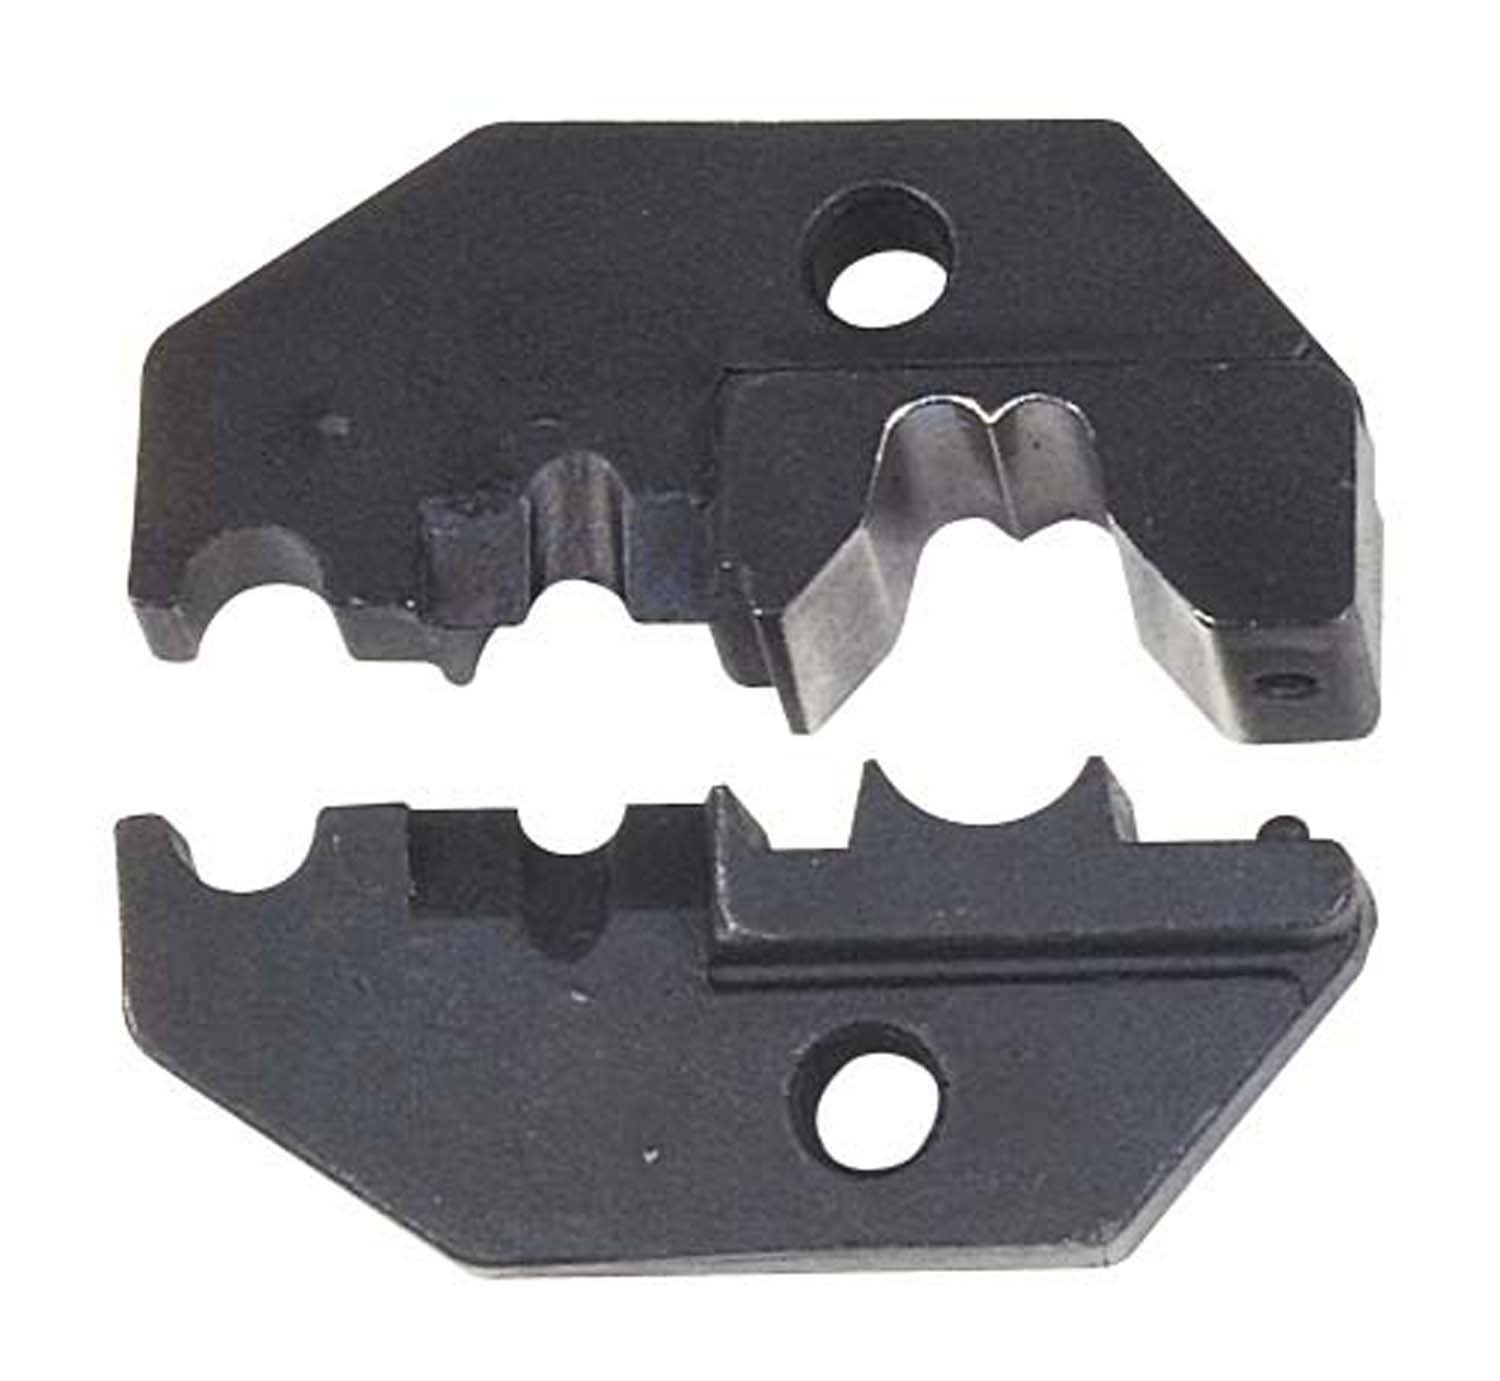 Plug Wire Crimp Jaws, Replacement Part for PN 35051